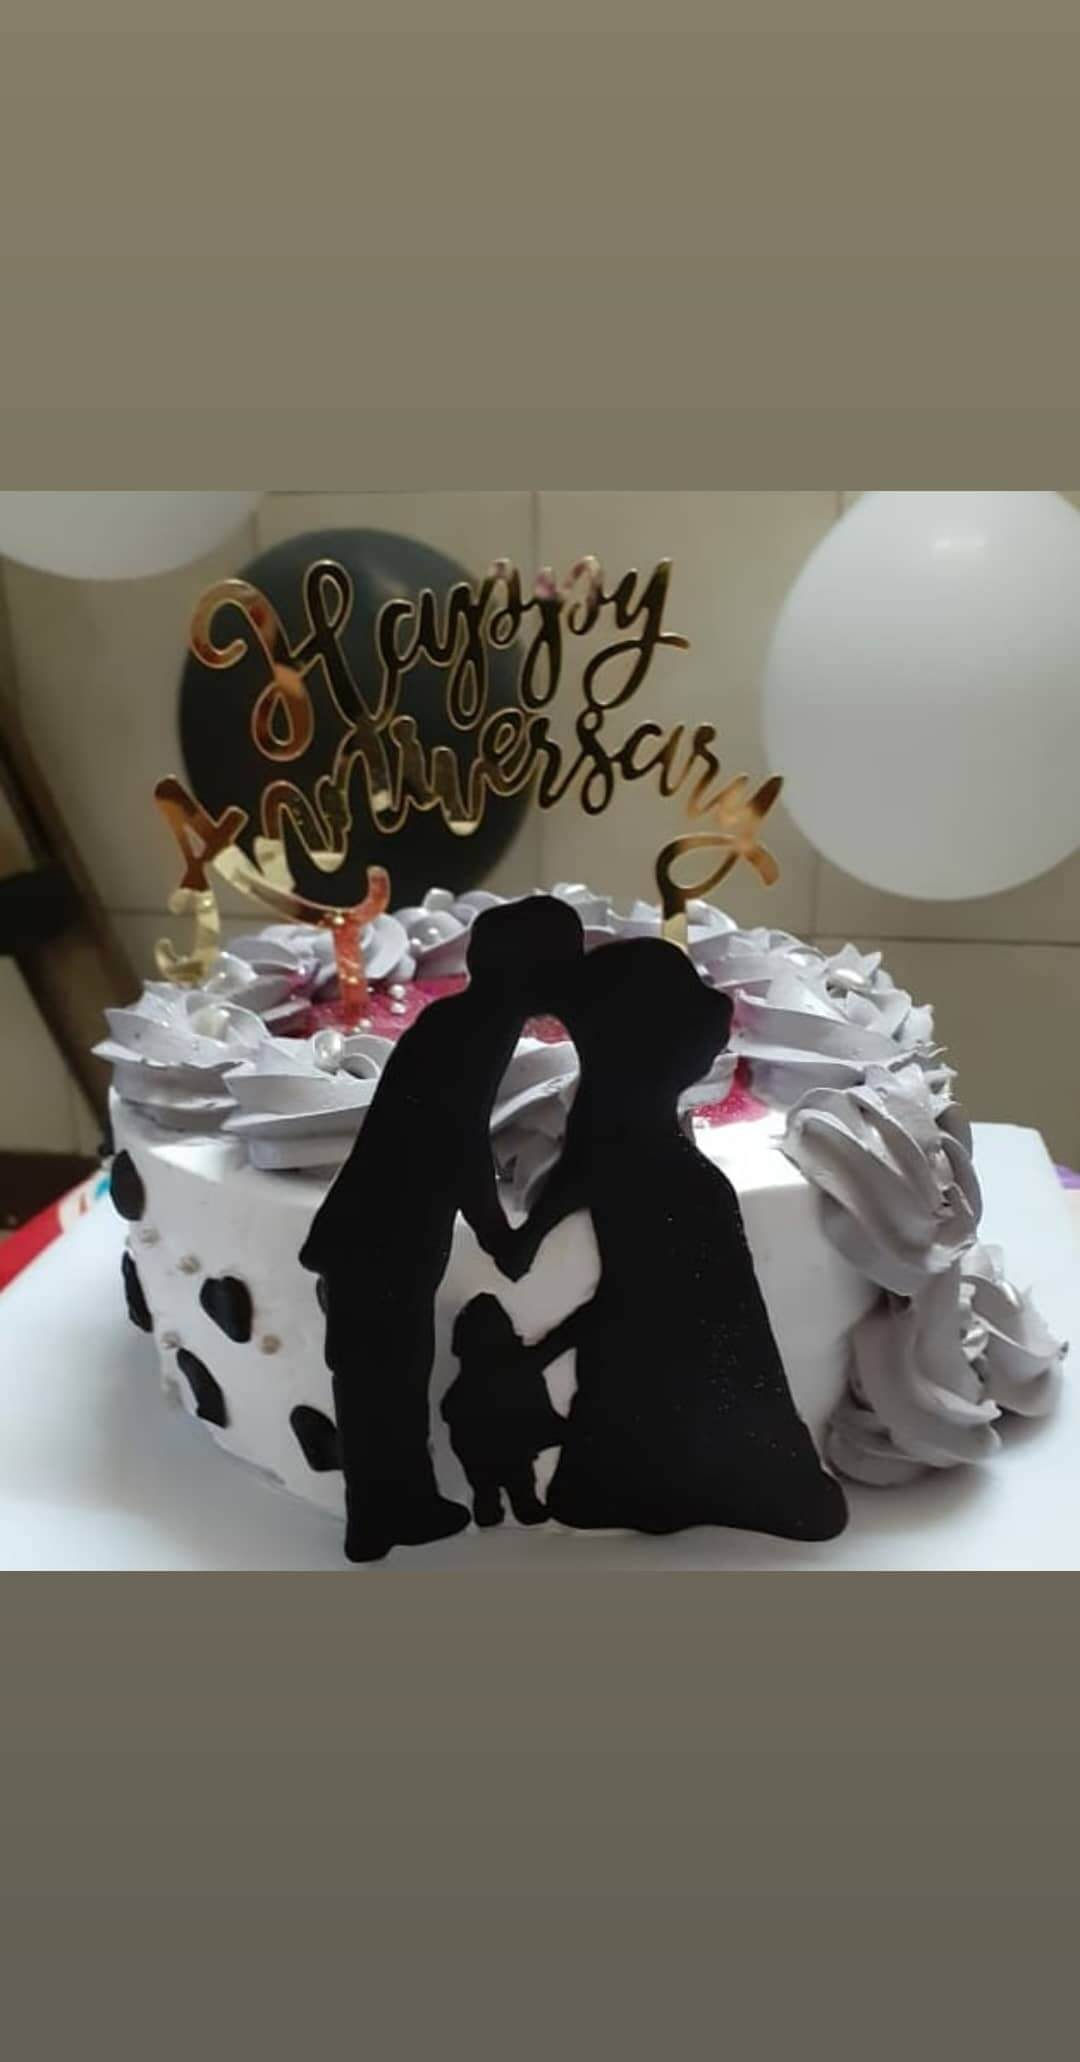 Anniversary Cake (Blueberry Cream Cheese) Designs, Images, Price Near Me